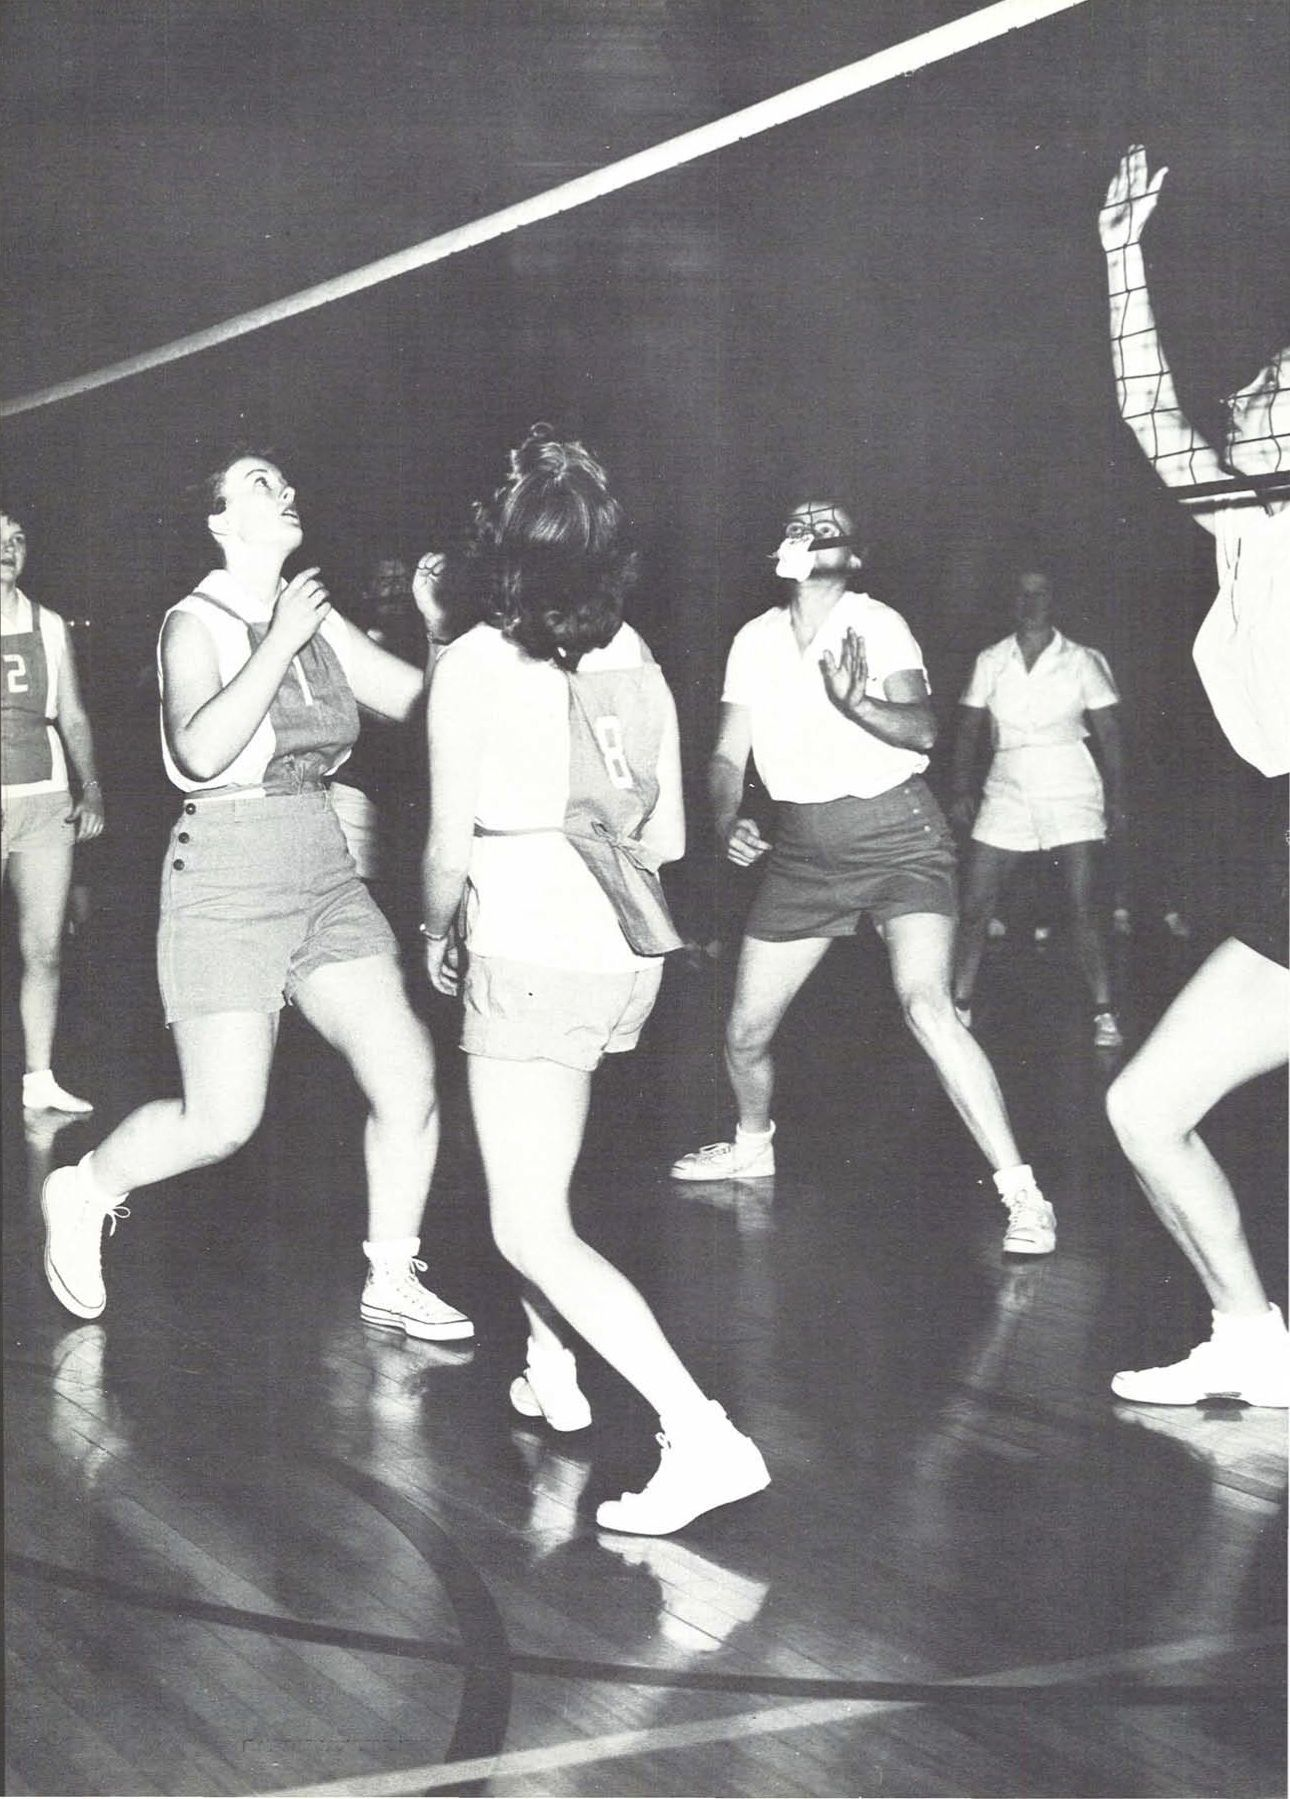 1956 57 Oregon Women S Volleyball From The 1957 Oregana University Of Oregon Yearbook Www Campusattic Com Women Volleyball University Of Oregon Women